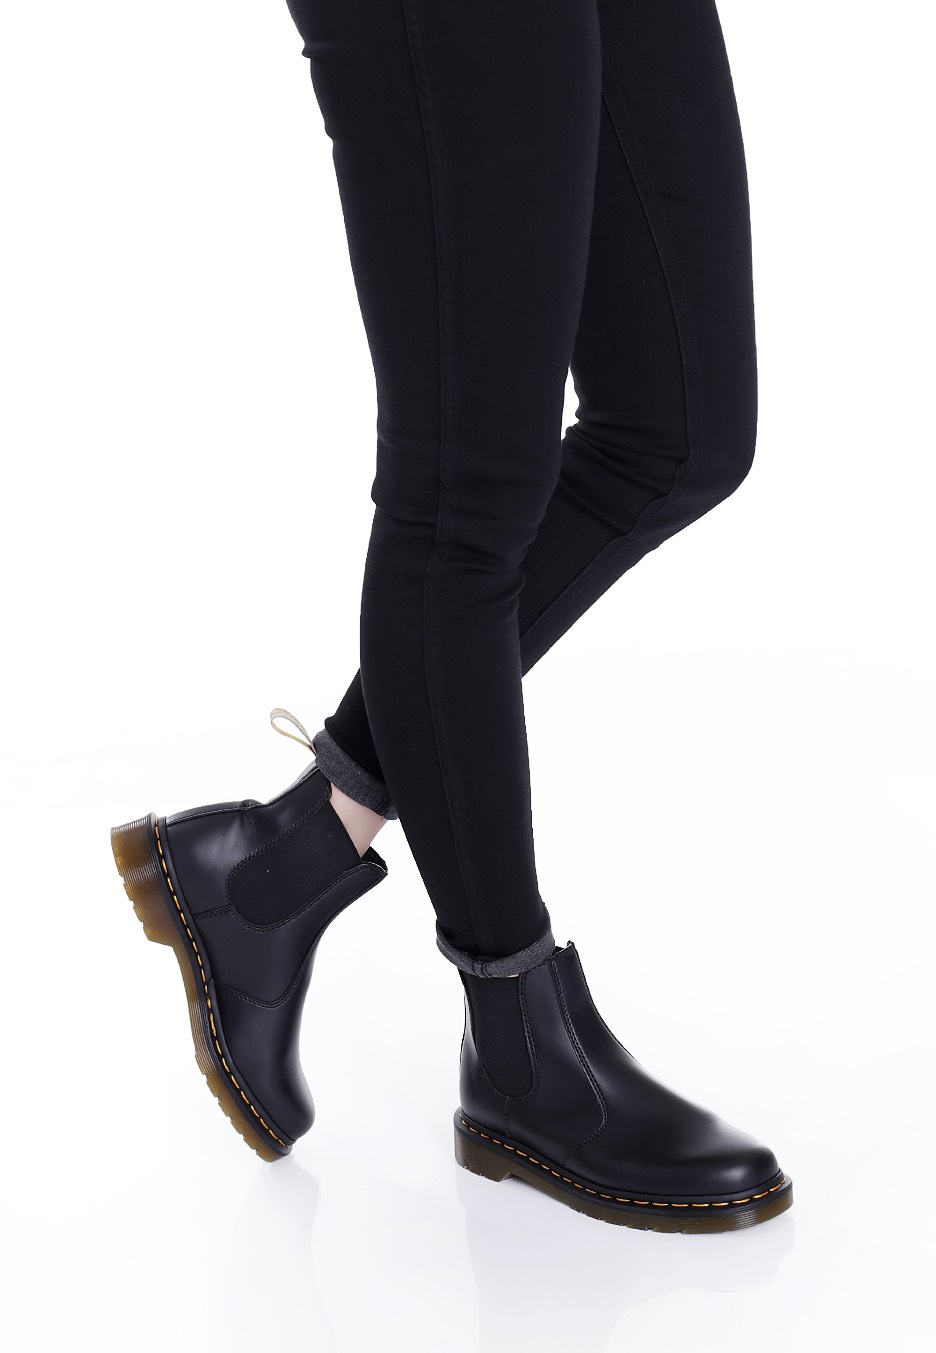 sneakers enjoy cheap price replicas doc martens chelsea boots vegan